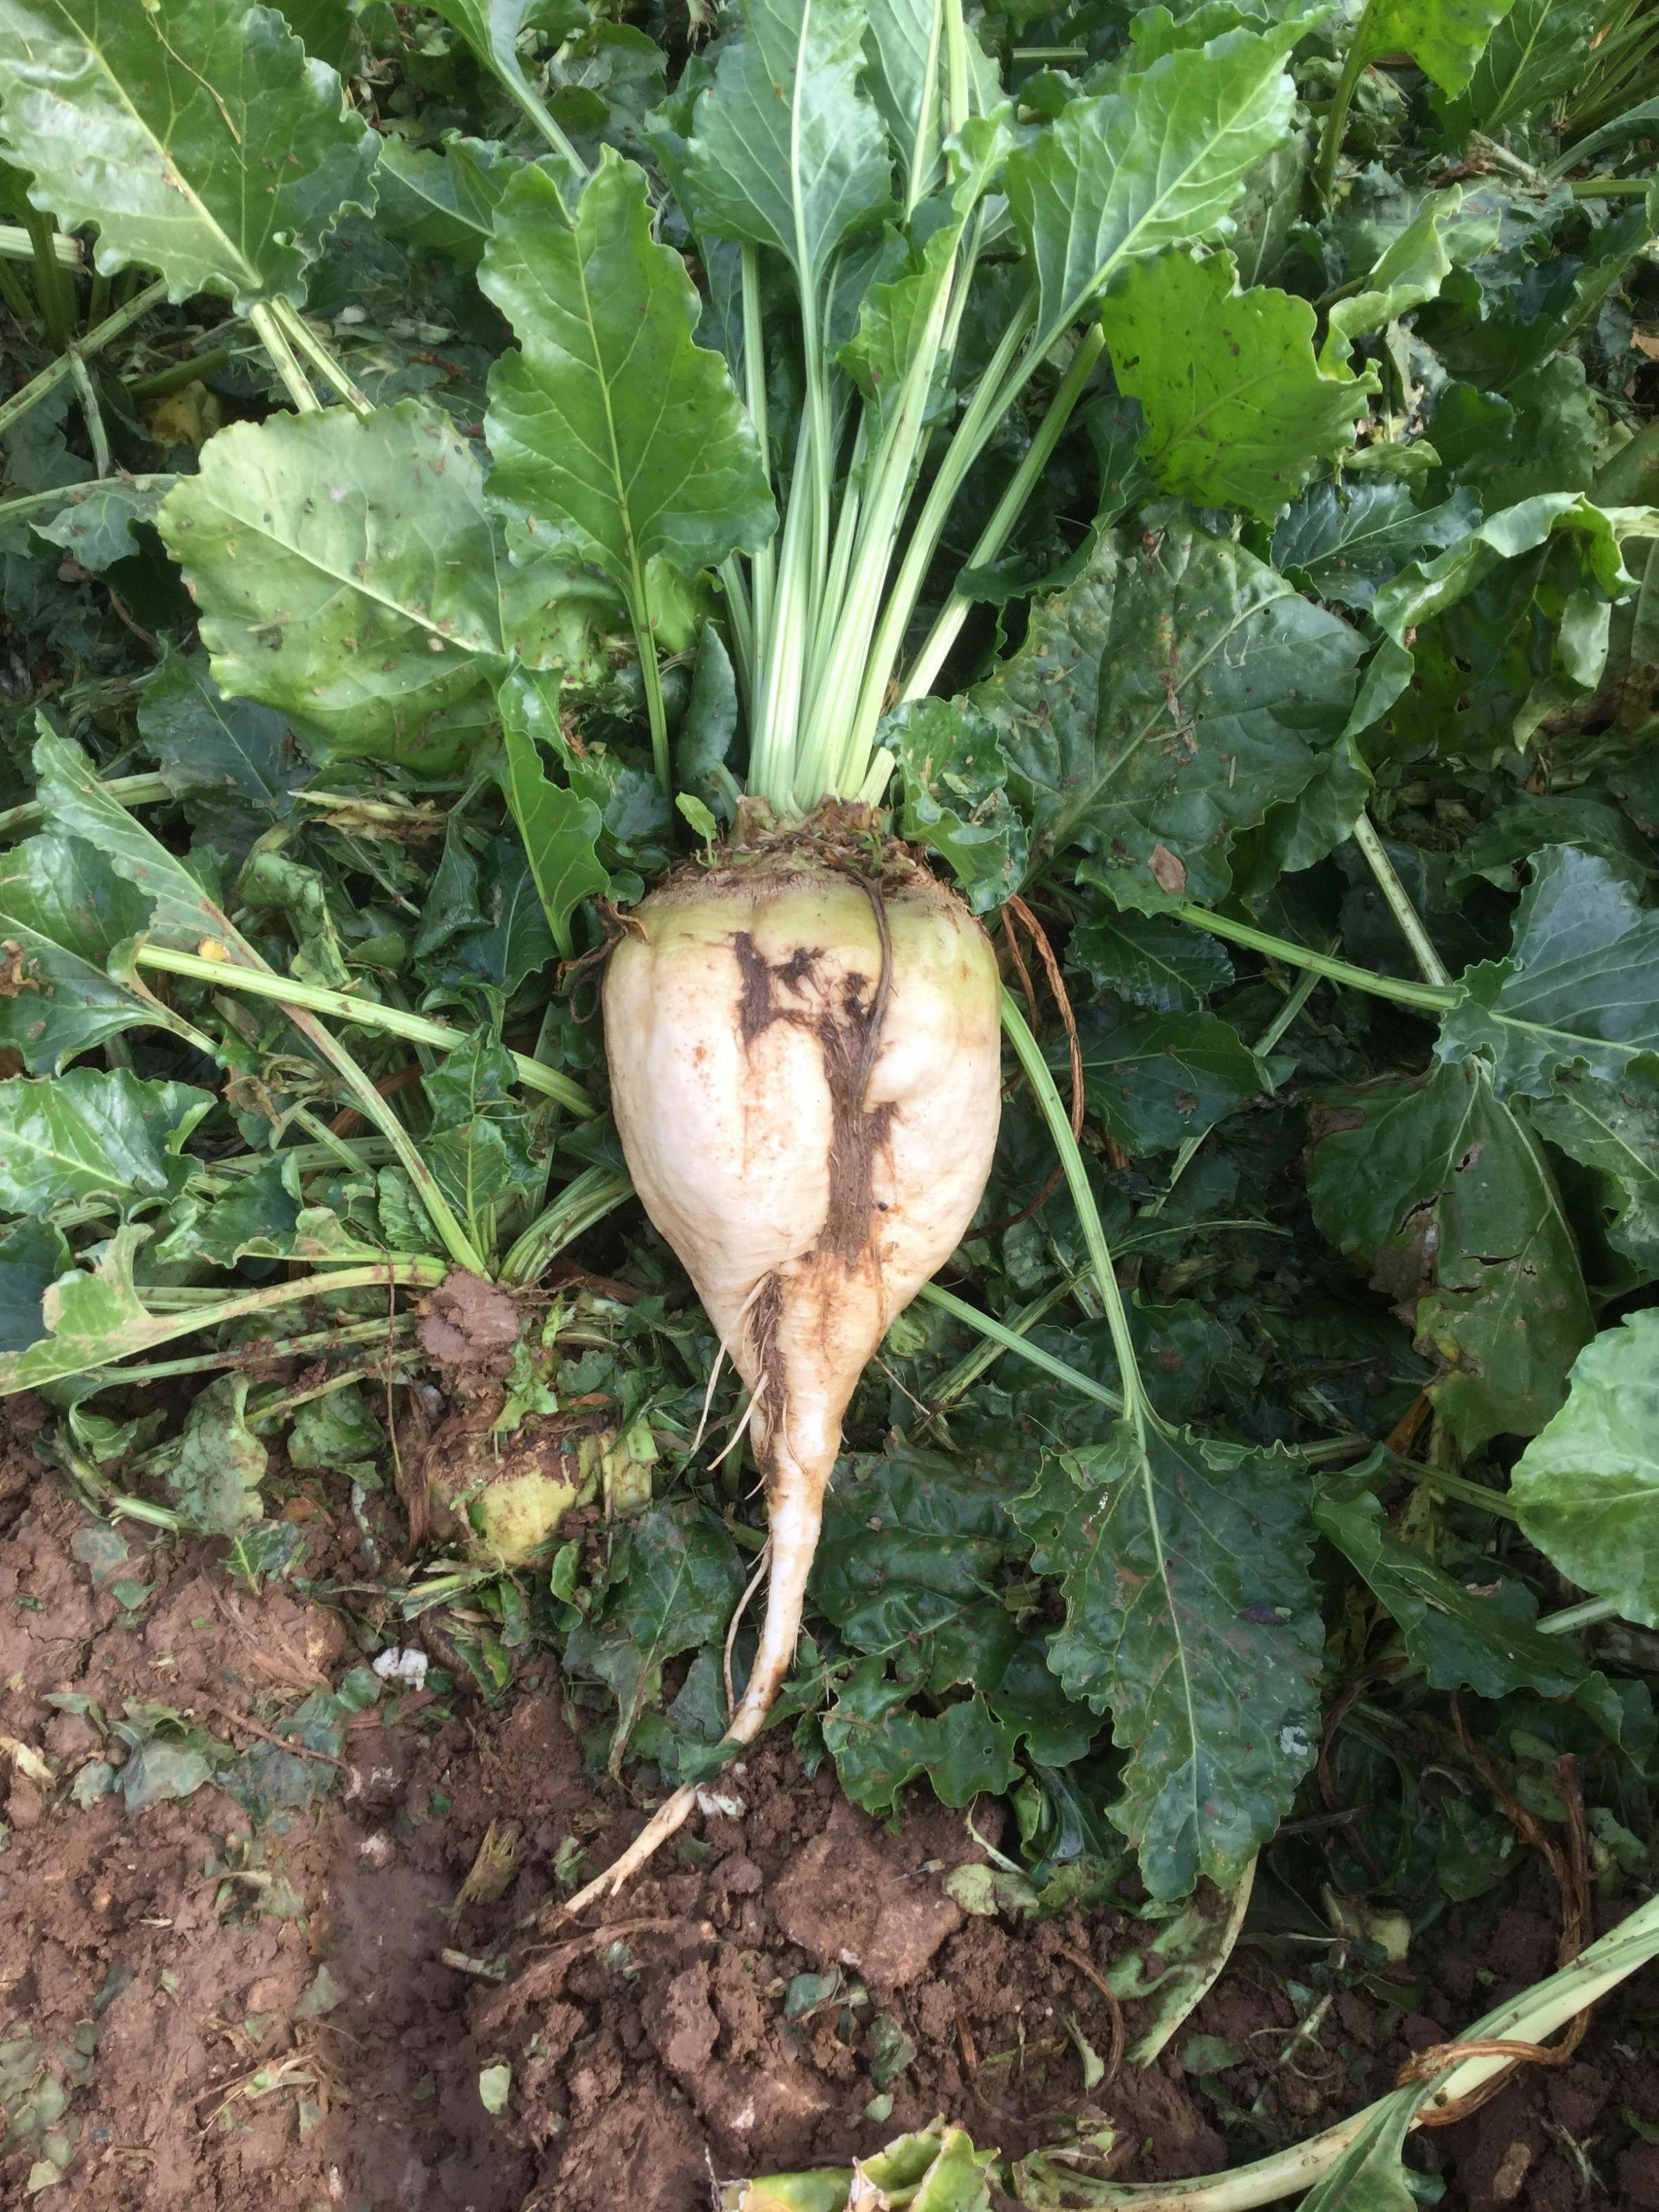 Top-performing fodder beet variety Brick is a white, smooth skinned variety that stores well. It is a deep-rooted variety and best lifted with a sugar beet harvester. Brick is rhizomania tolerant and is also ideal for anaerobic digestion.